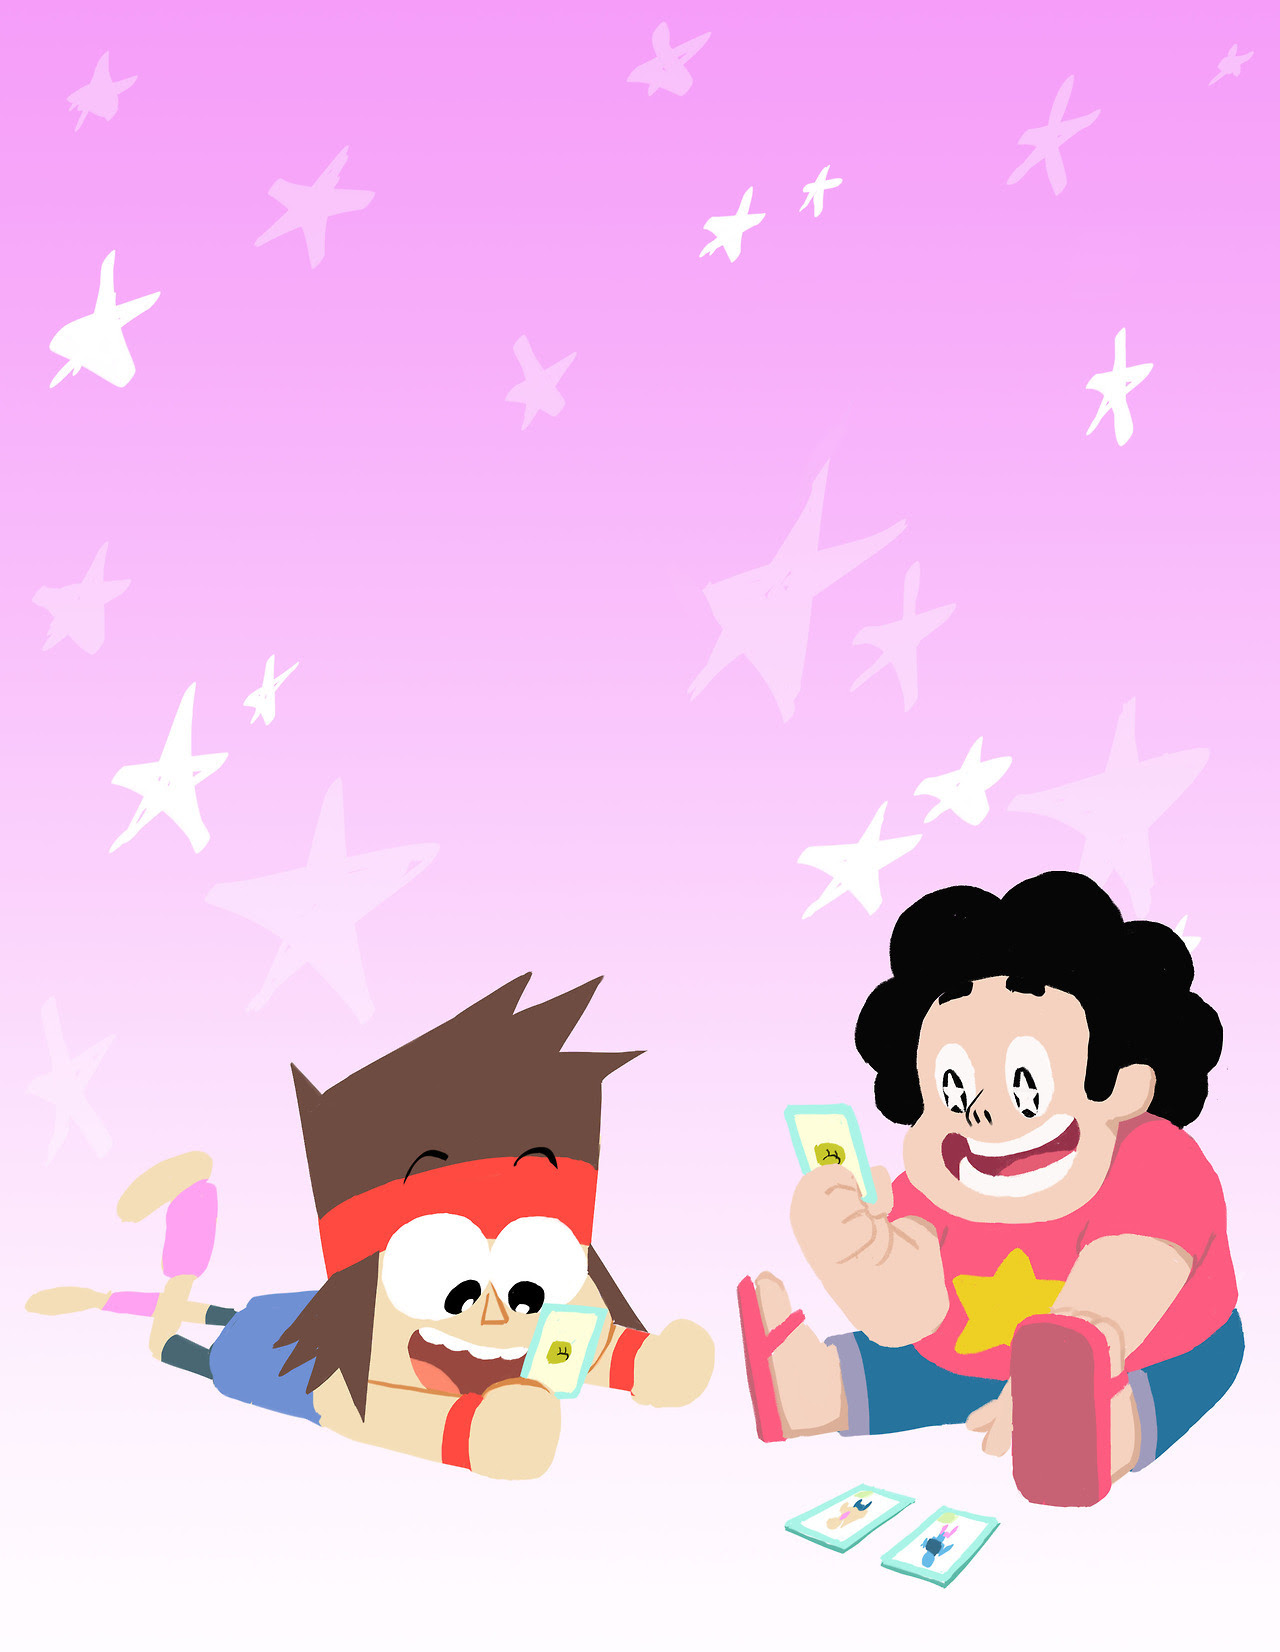 I'm pretty sure KO and Steven would be great friends :)